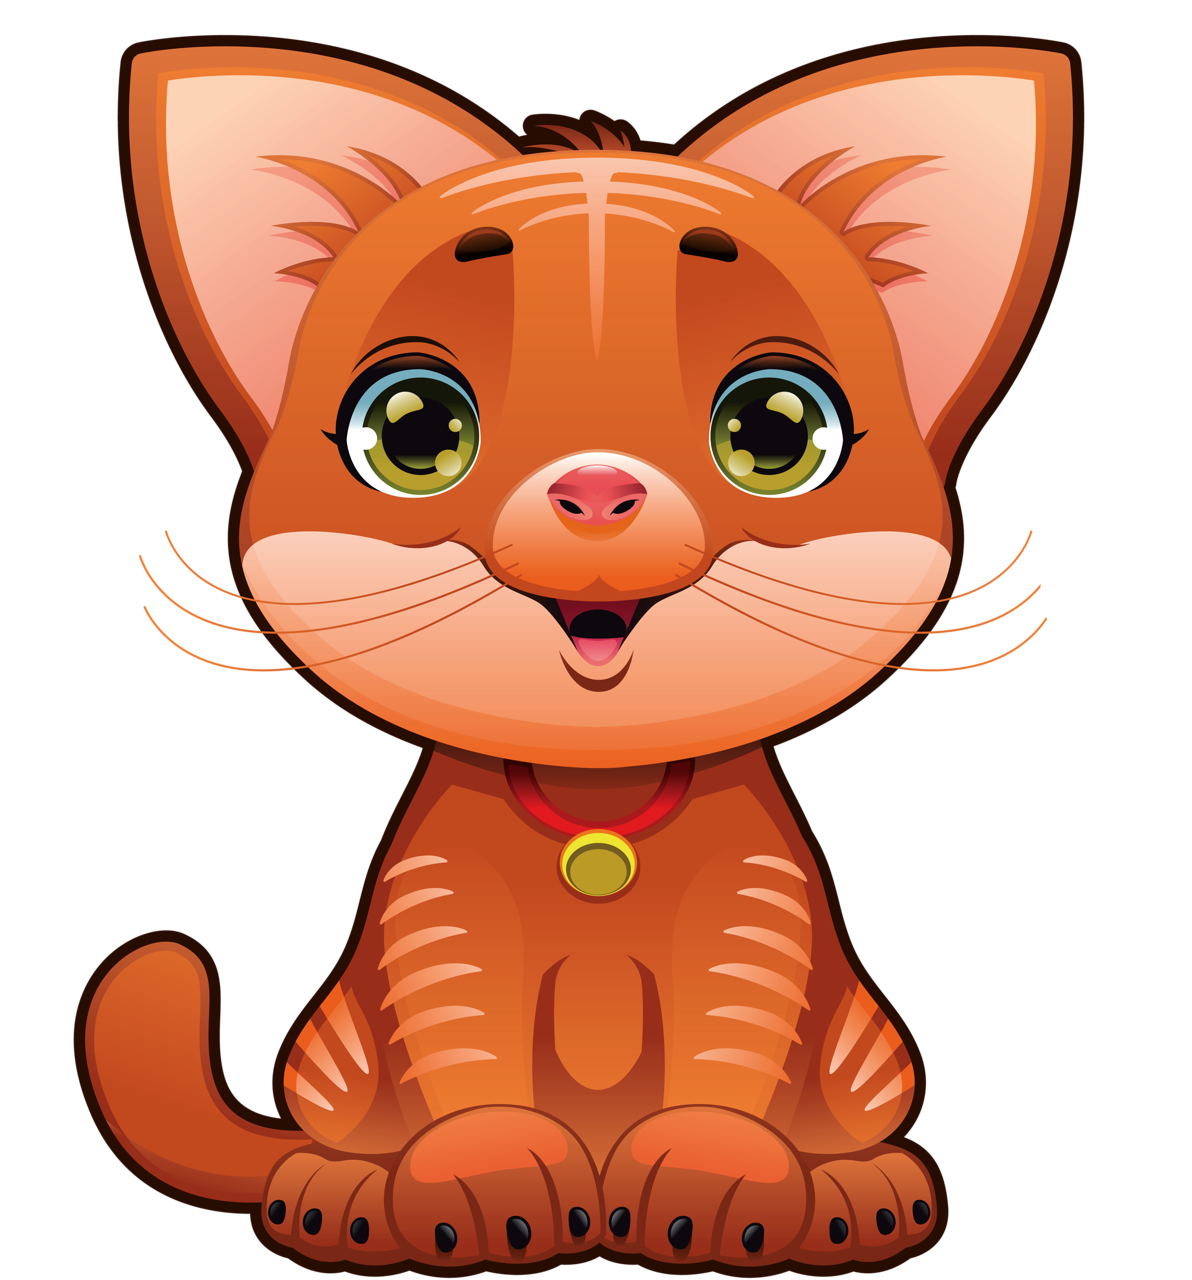 Dog and cat together clipart picture transparent download Яндекс.Фотки | Clipart animals | Pinterest | Album picture transparent download